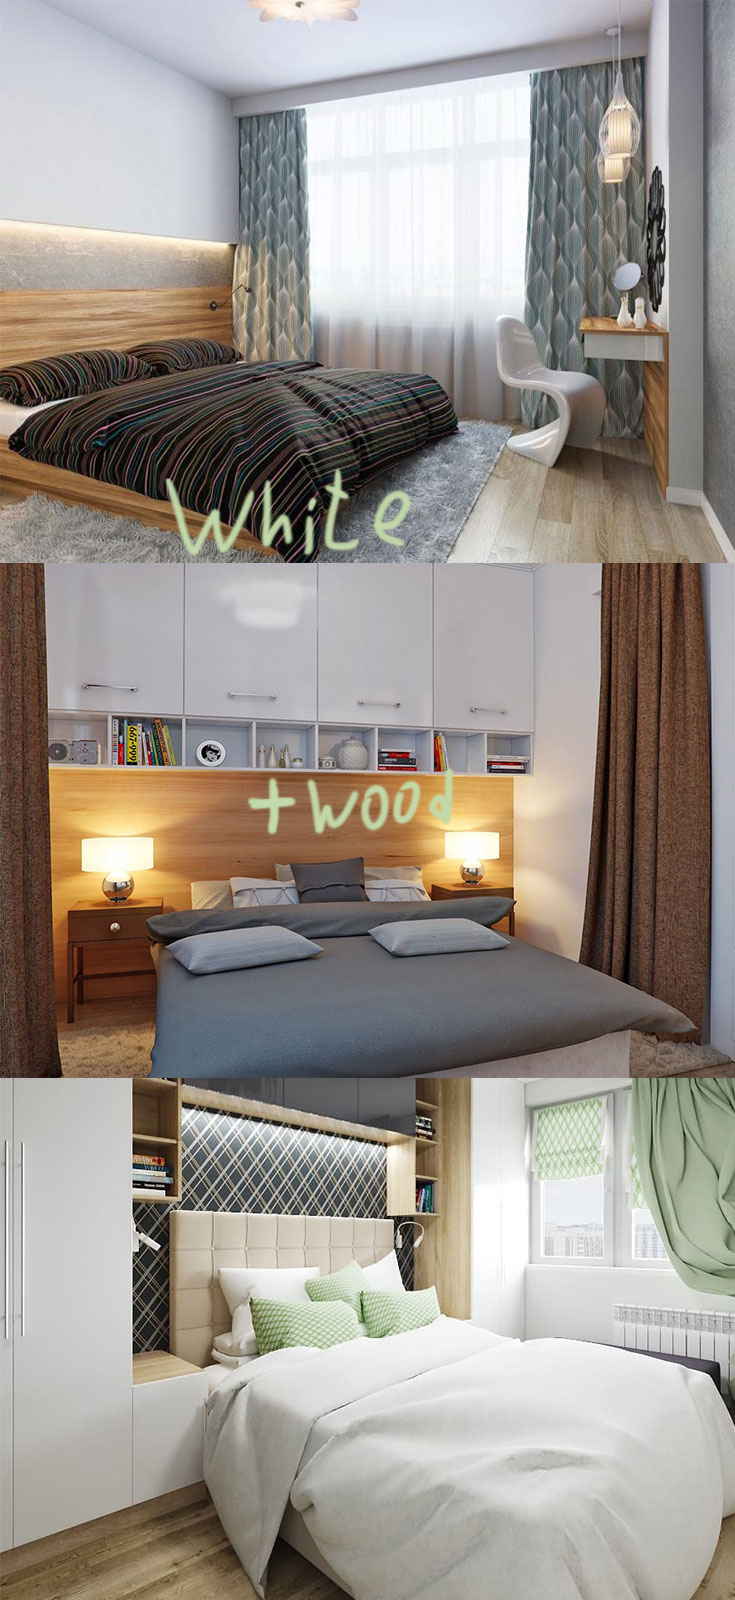 9 Small Bedroom Color Ideas - 35 photos + accent wall paint ...